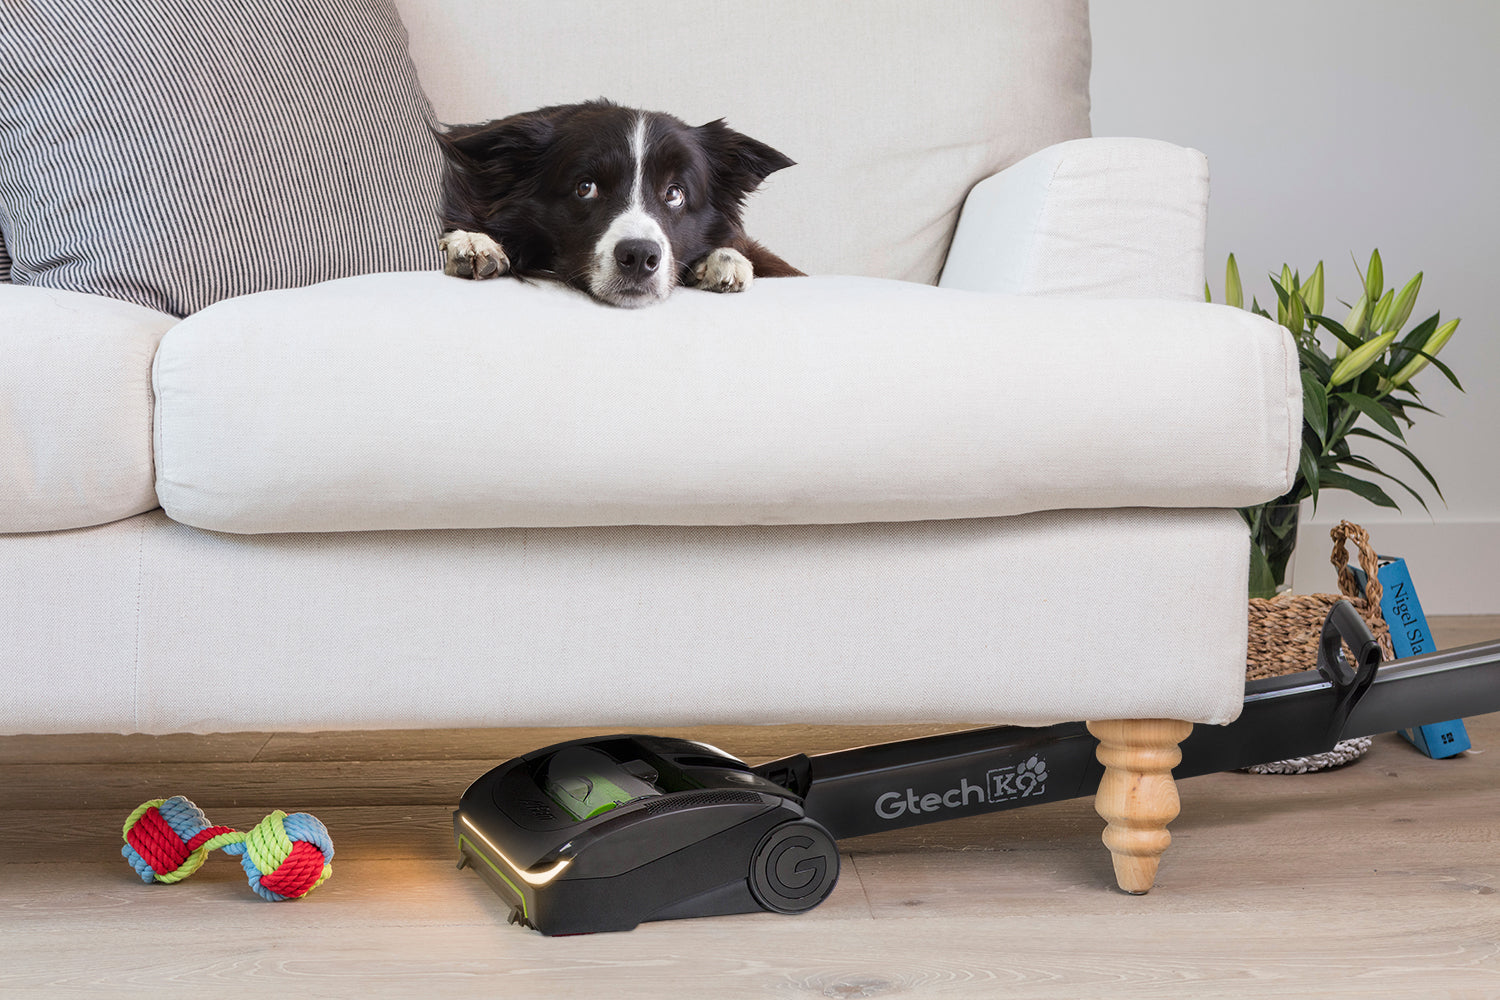 What you need to know before purchasing your next vacuum cleaner